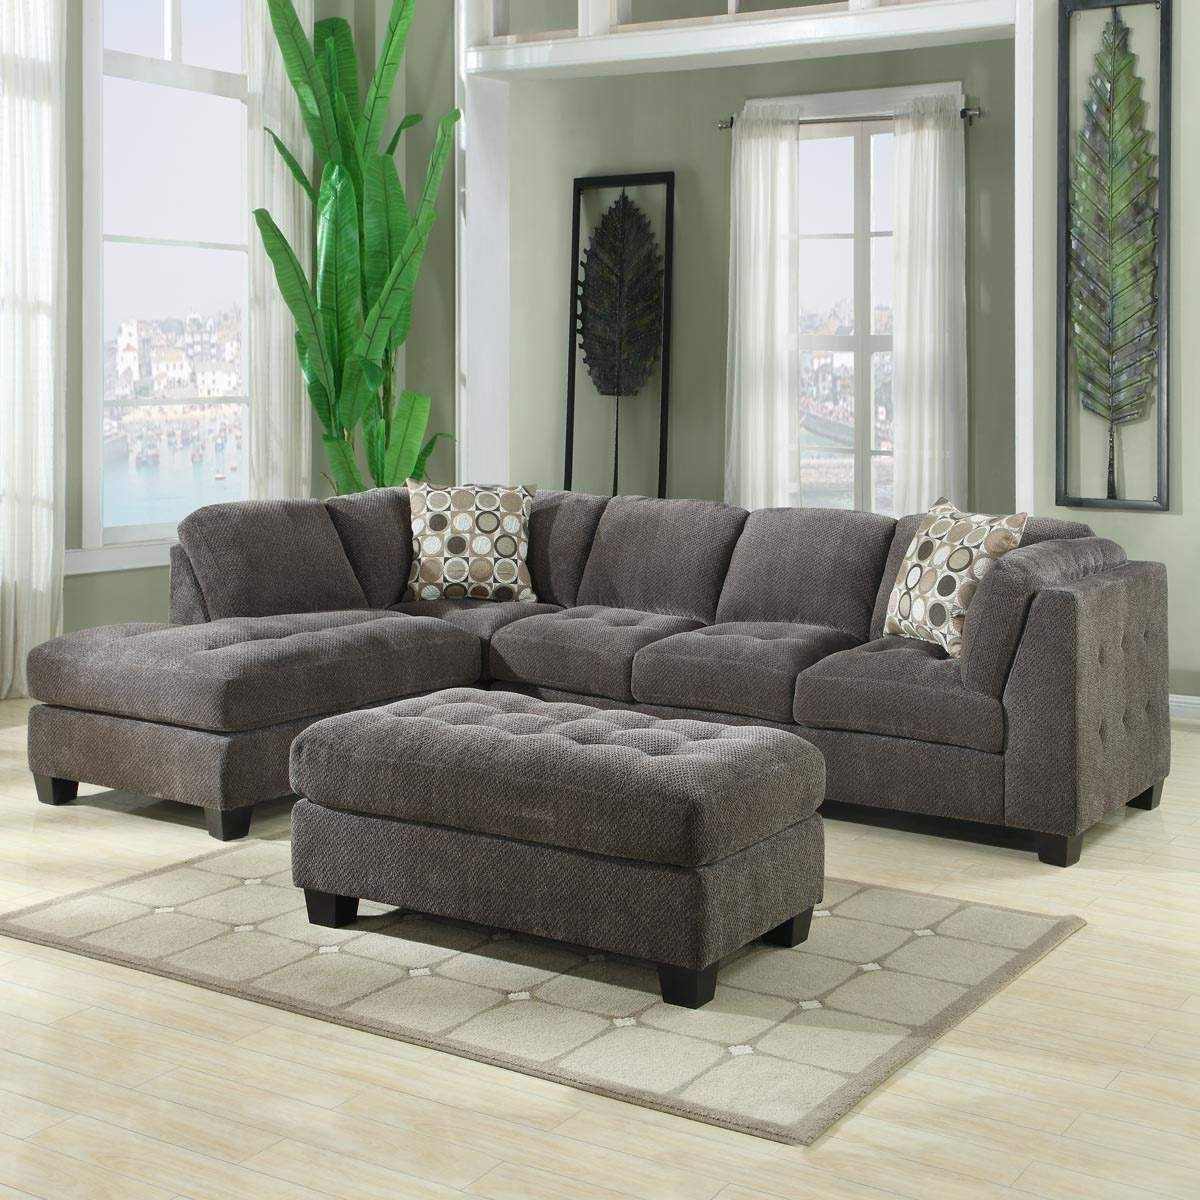 Norfolk Grey 3 Piece Sectional W/laf Chaise In Norfolk Grey 3 Piece Sectionals With Laf Chaise (Photo 7 of 30)